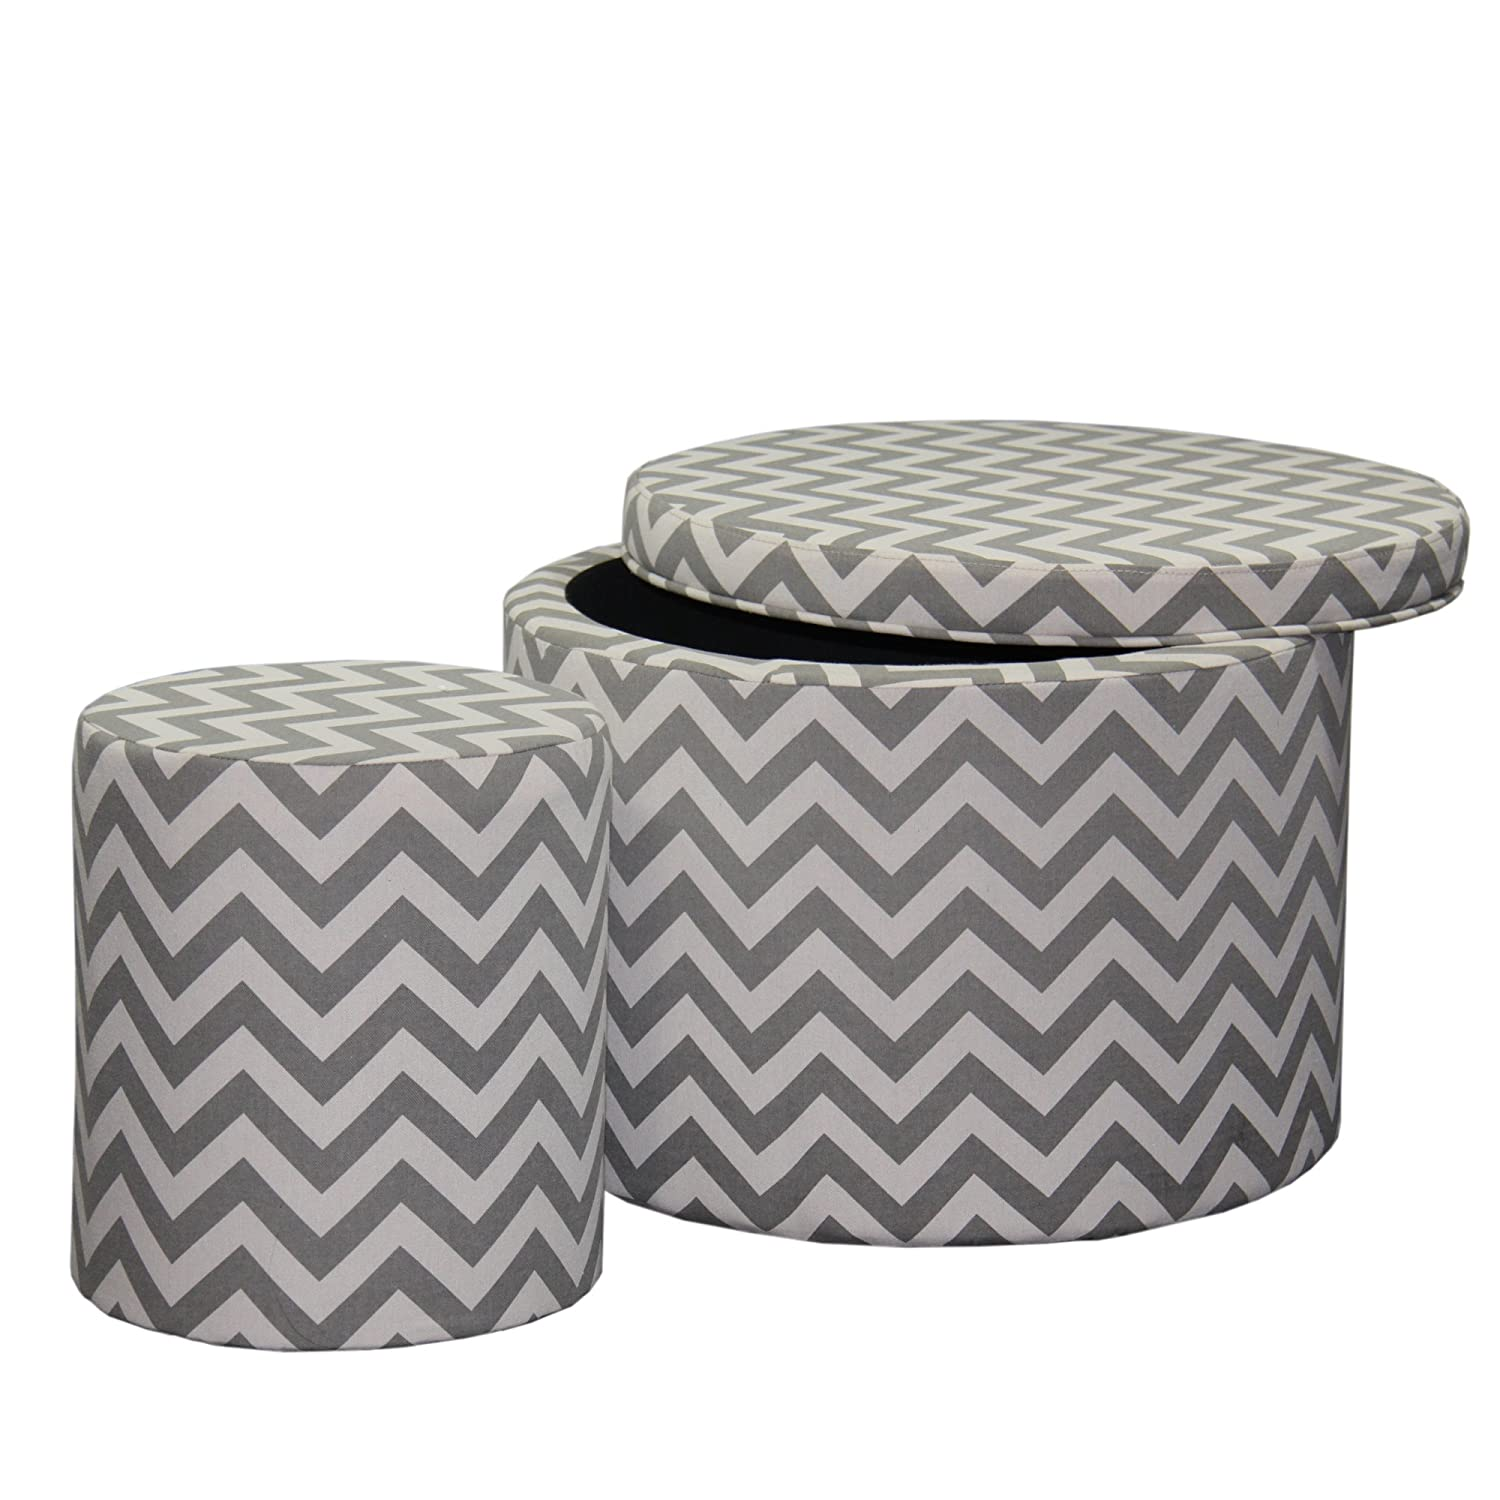 Magnificent Ore International Hb4593 Chevron Storage Ottoman With One Extra Seating 17 35 Gray Caraccident5 Cool Chair Designs And Ideas Caraccident5Info